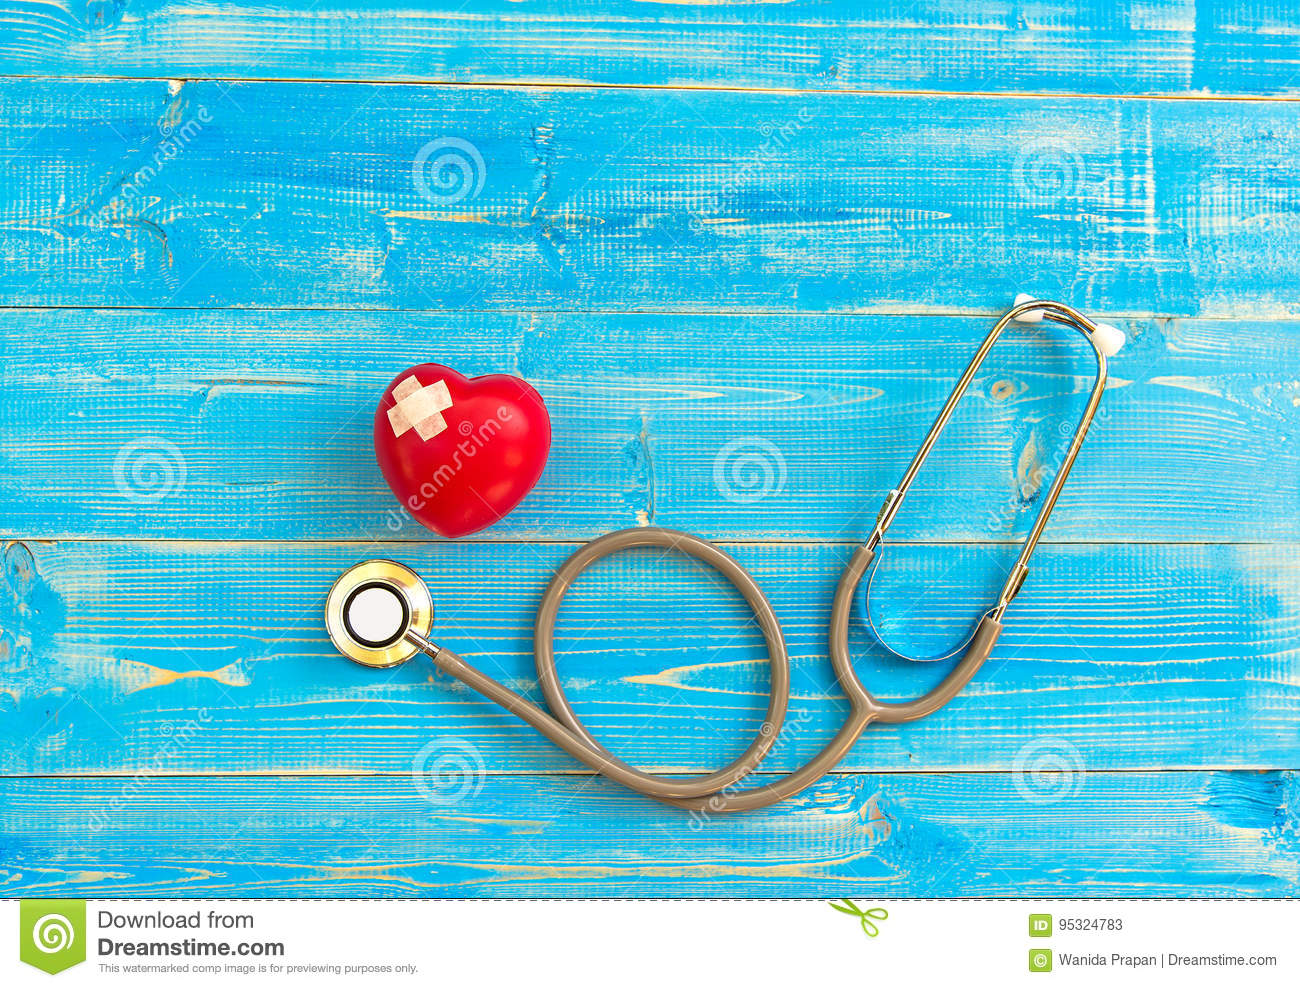 One single alone red heart love shape hand exercise ball with bandage MD medical doctor physician`s stethoscope blue wood backgro